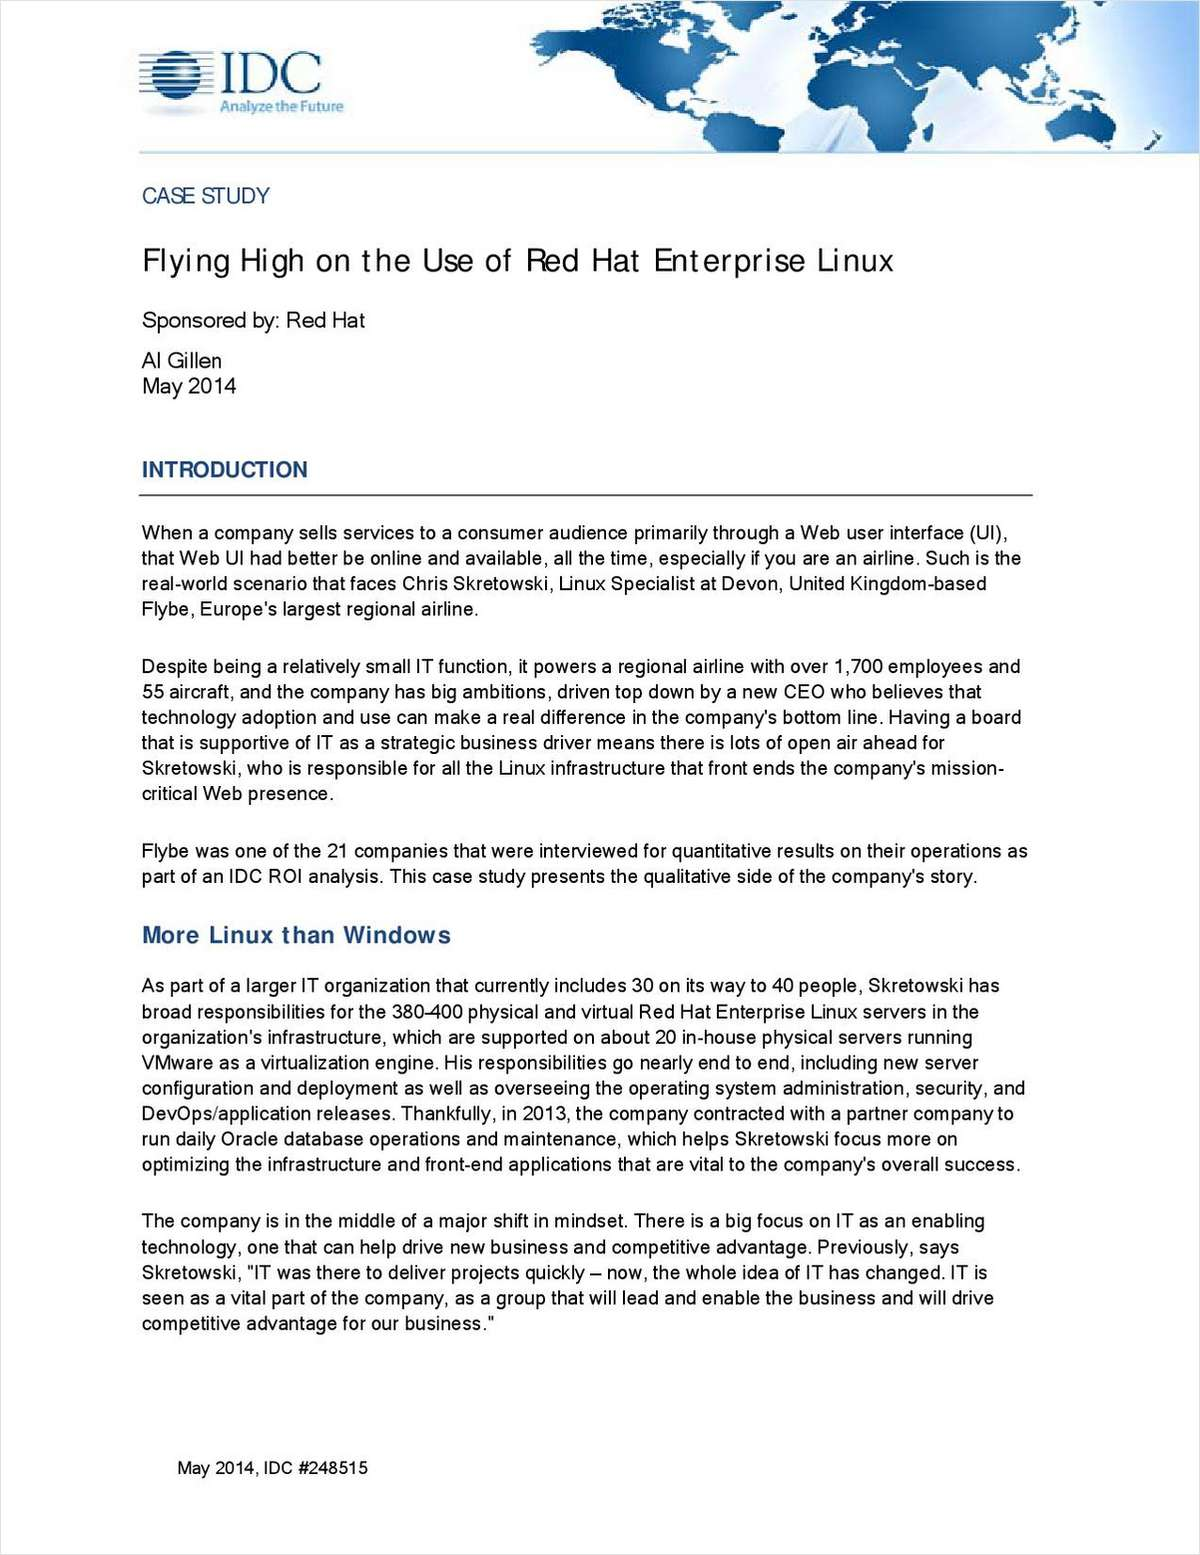 Flying High on the Use of Red Hat Enterprise Linux